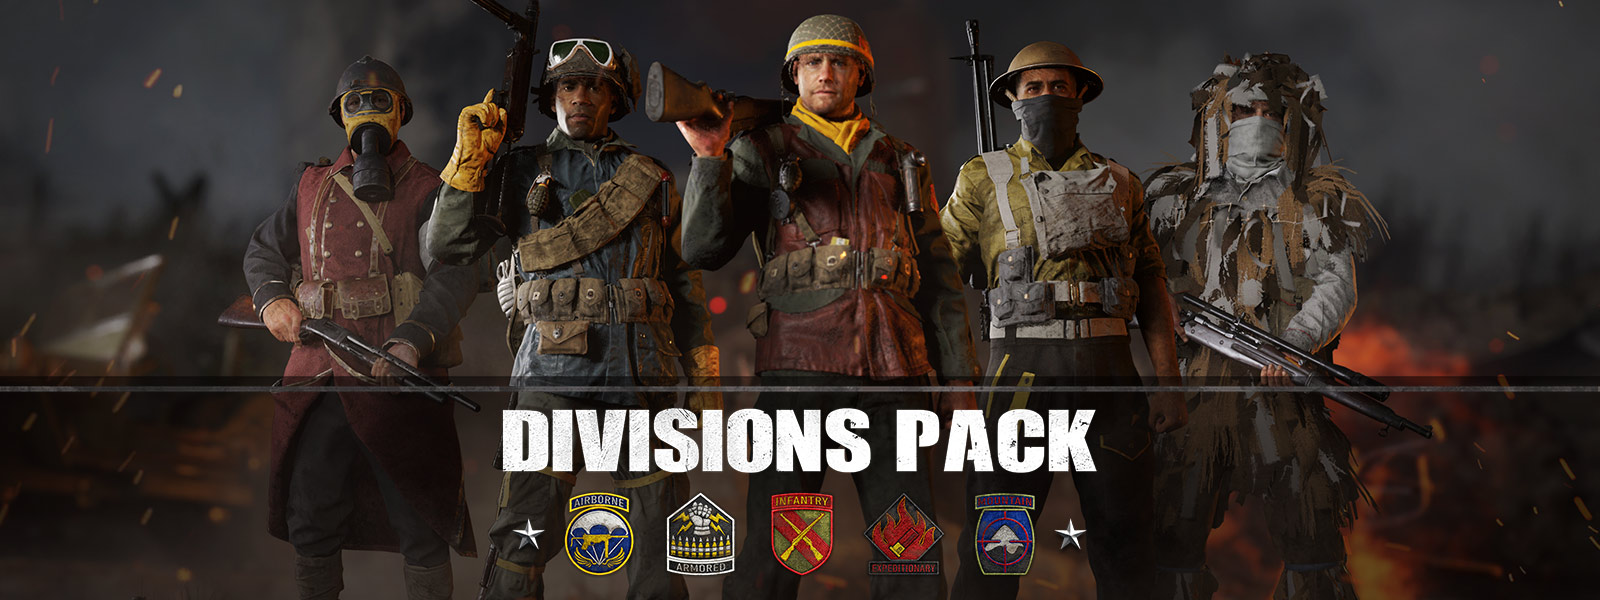 Divisions Pack Infantry Division Riflemen